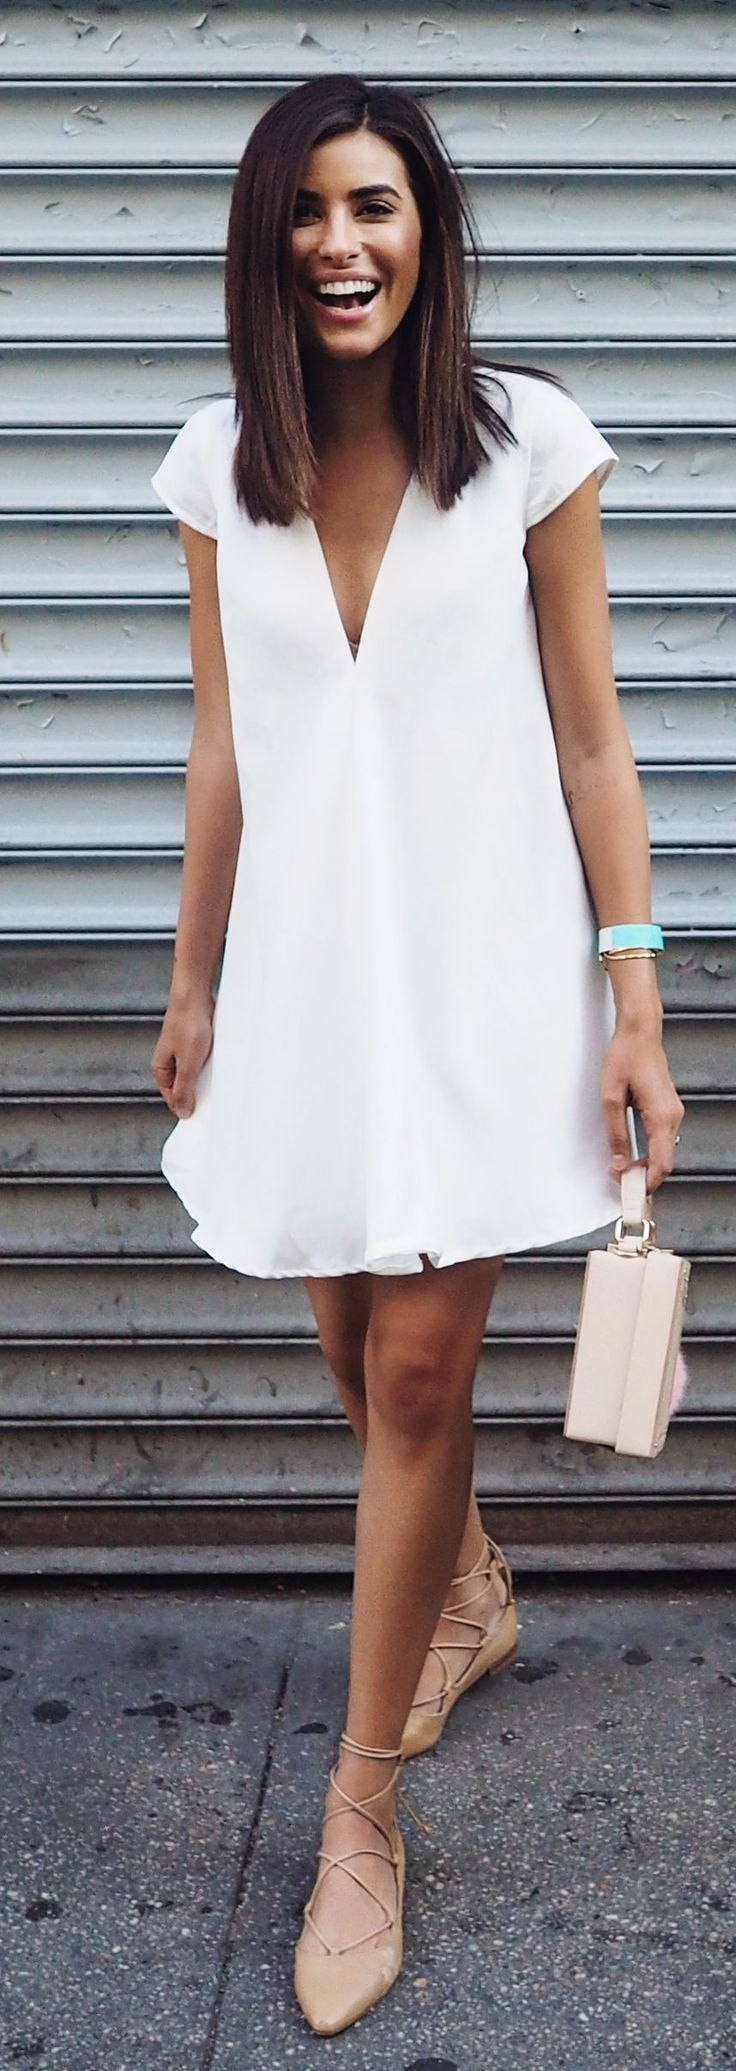 Vestido blanco impecable, sutil. #vestidoblanco